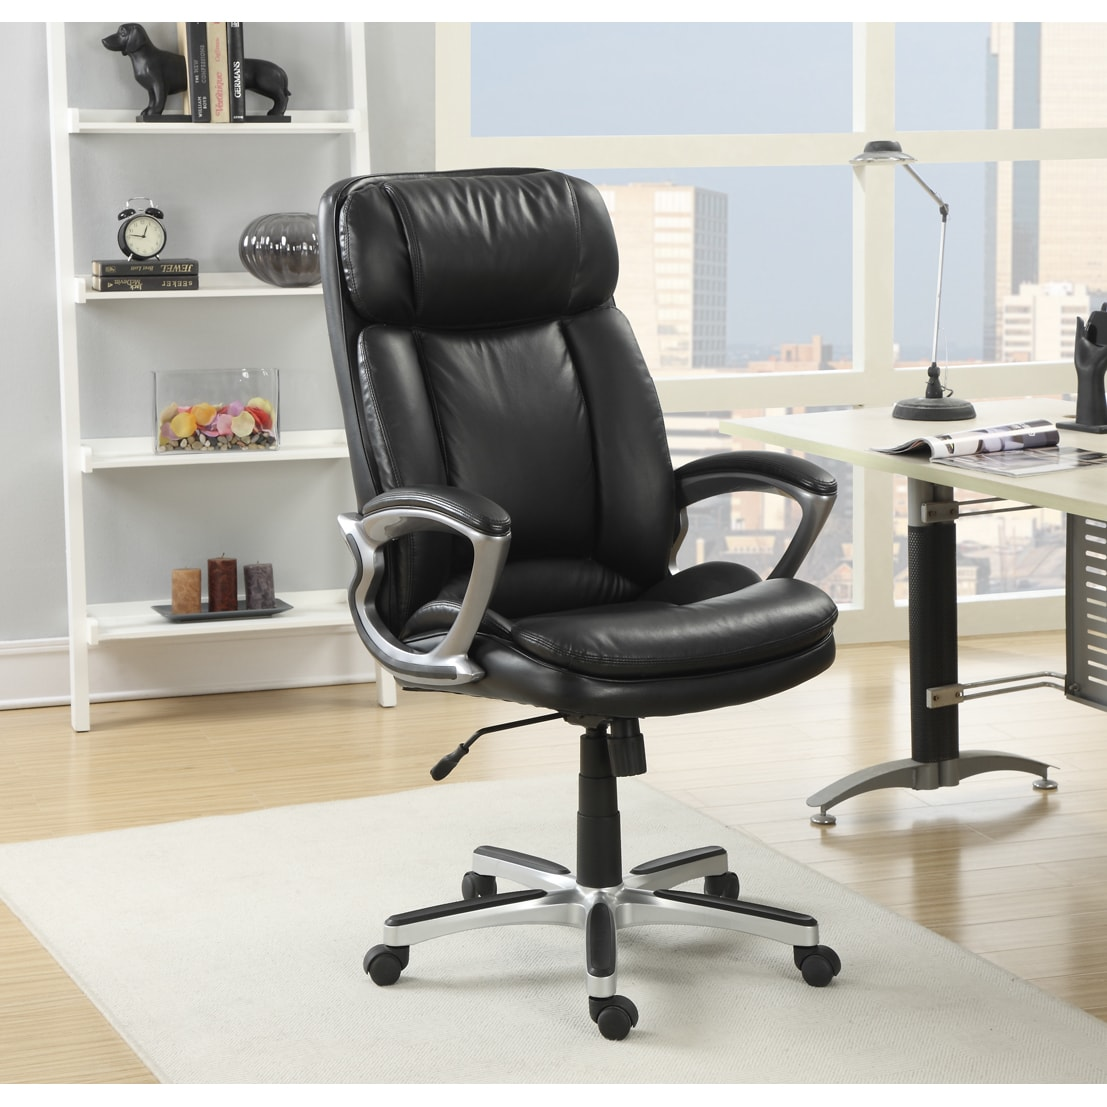 Serta Executive Smooth Black And Tall Puresoft Faux Leather Office Chair Free Shipping Today 9079992